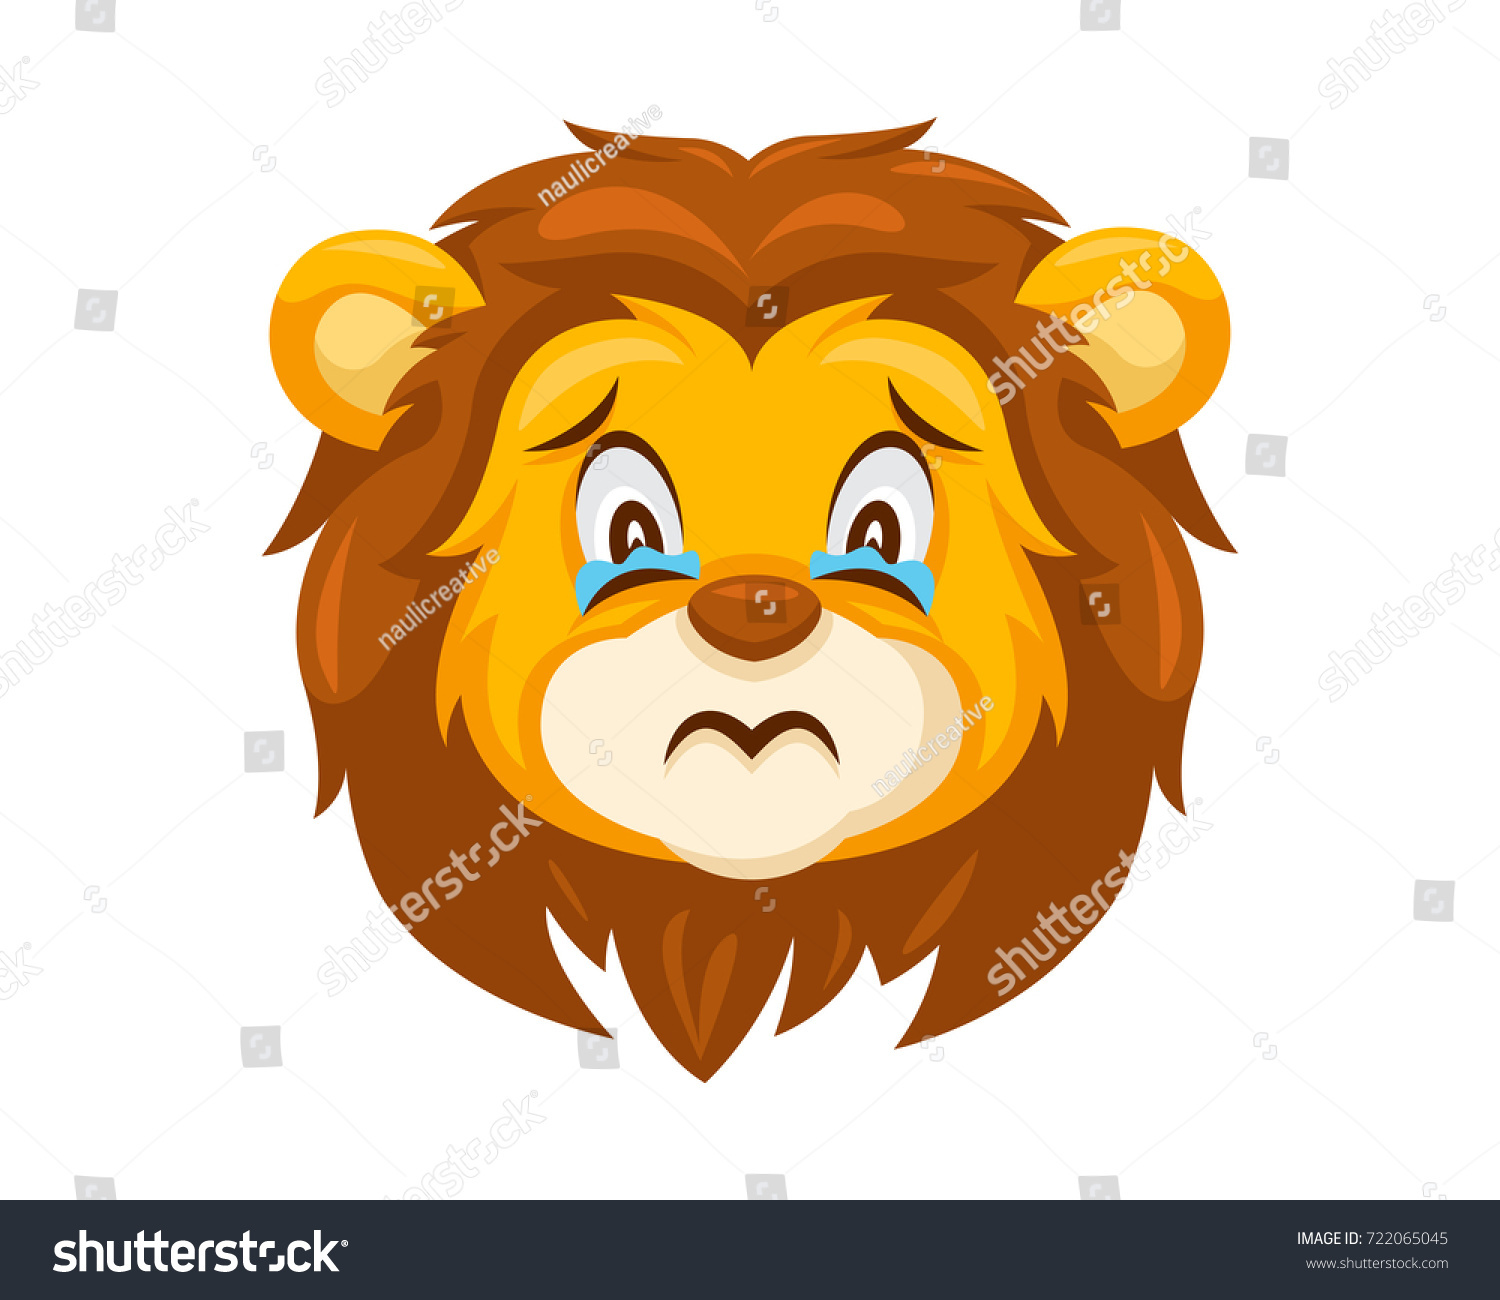 Cute Lion Face Emoticon Emoji Expression Stock Vector ...